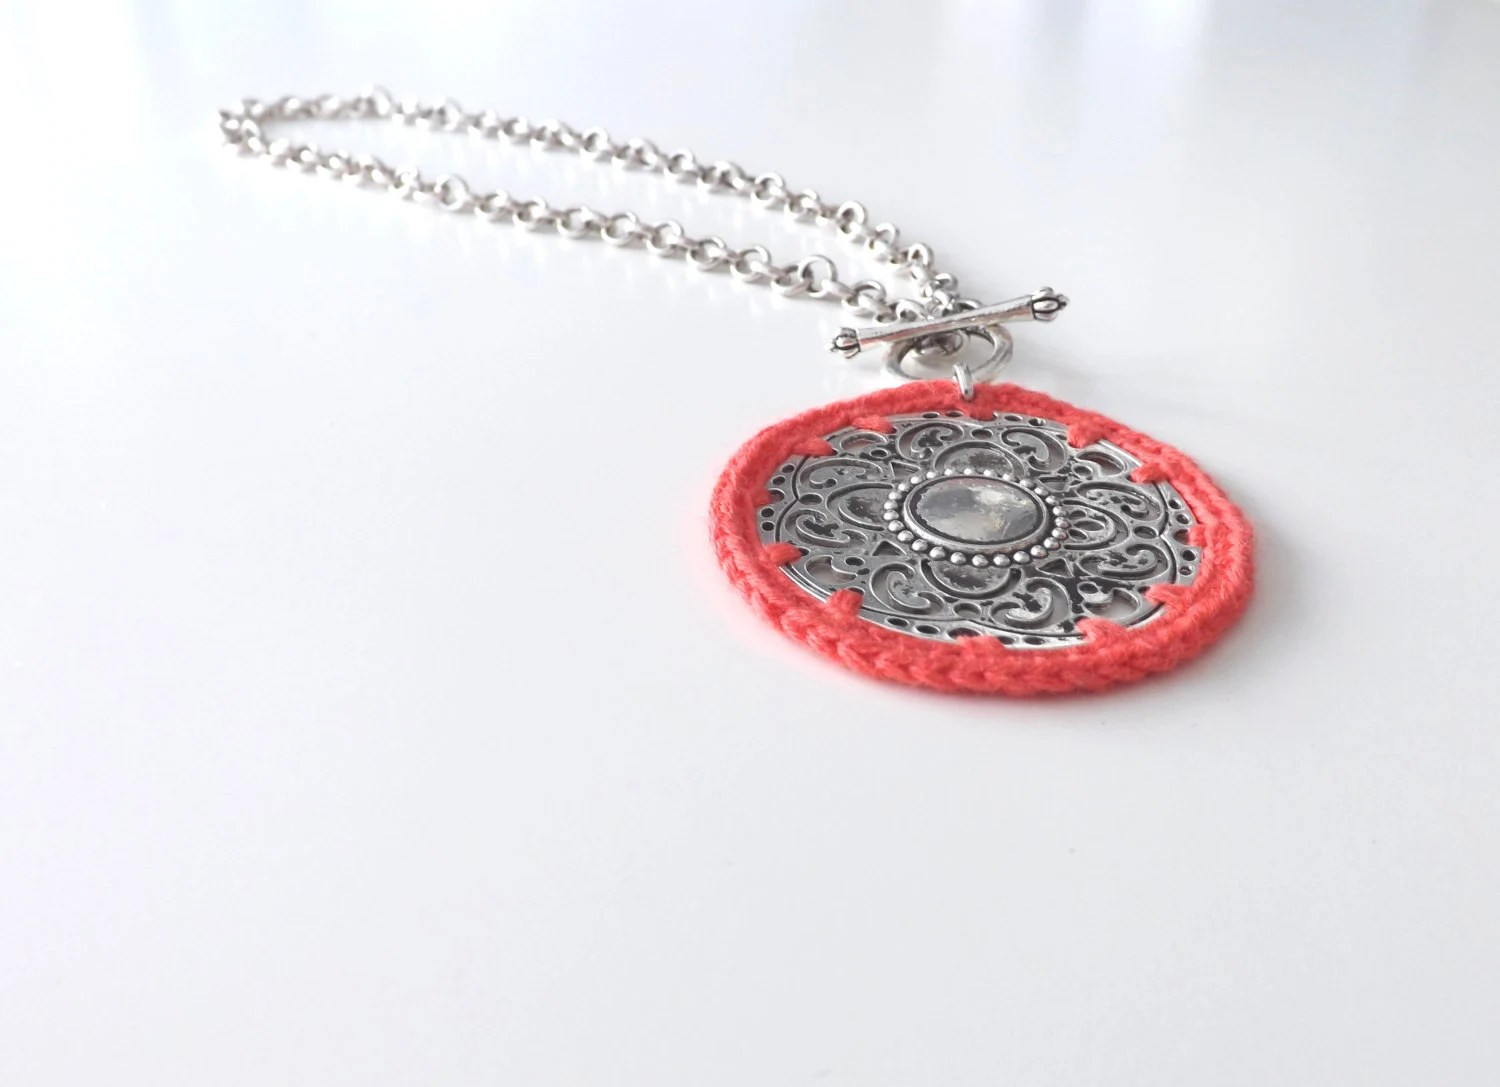 Crochet Bohemian Chic Necklace in Apple blossom on Silvered Base. Handmade Hippie Boho Gypsy Style Jewelry - Portobelloknit